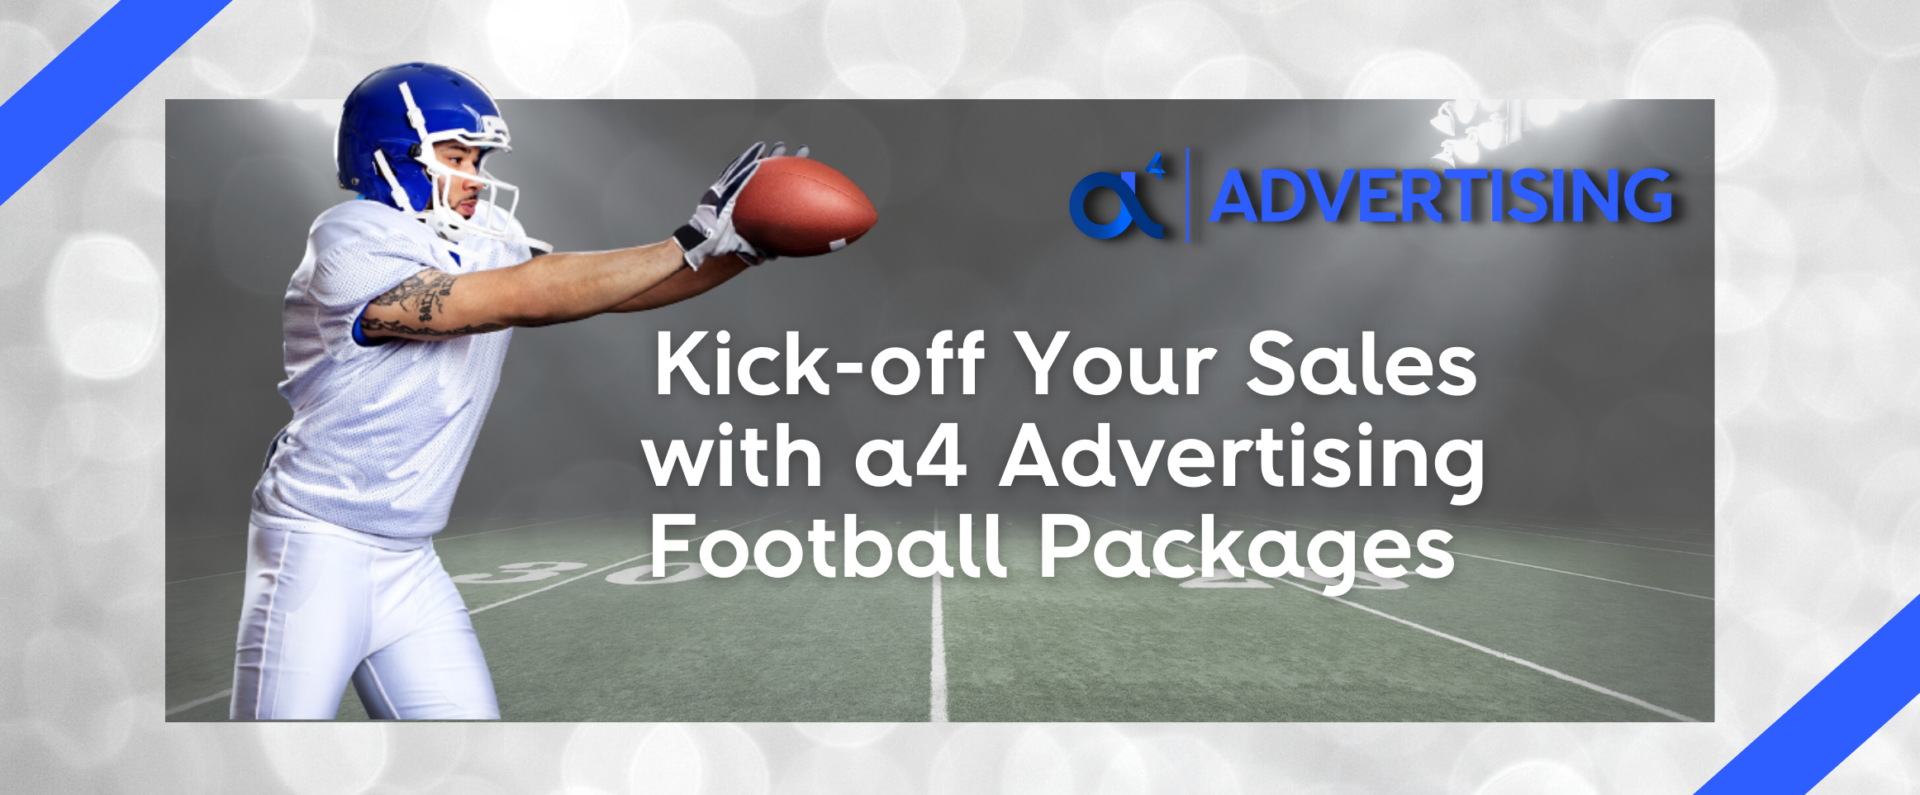 kick-off your sales with a4 Advertising Football Packages